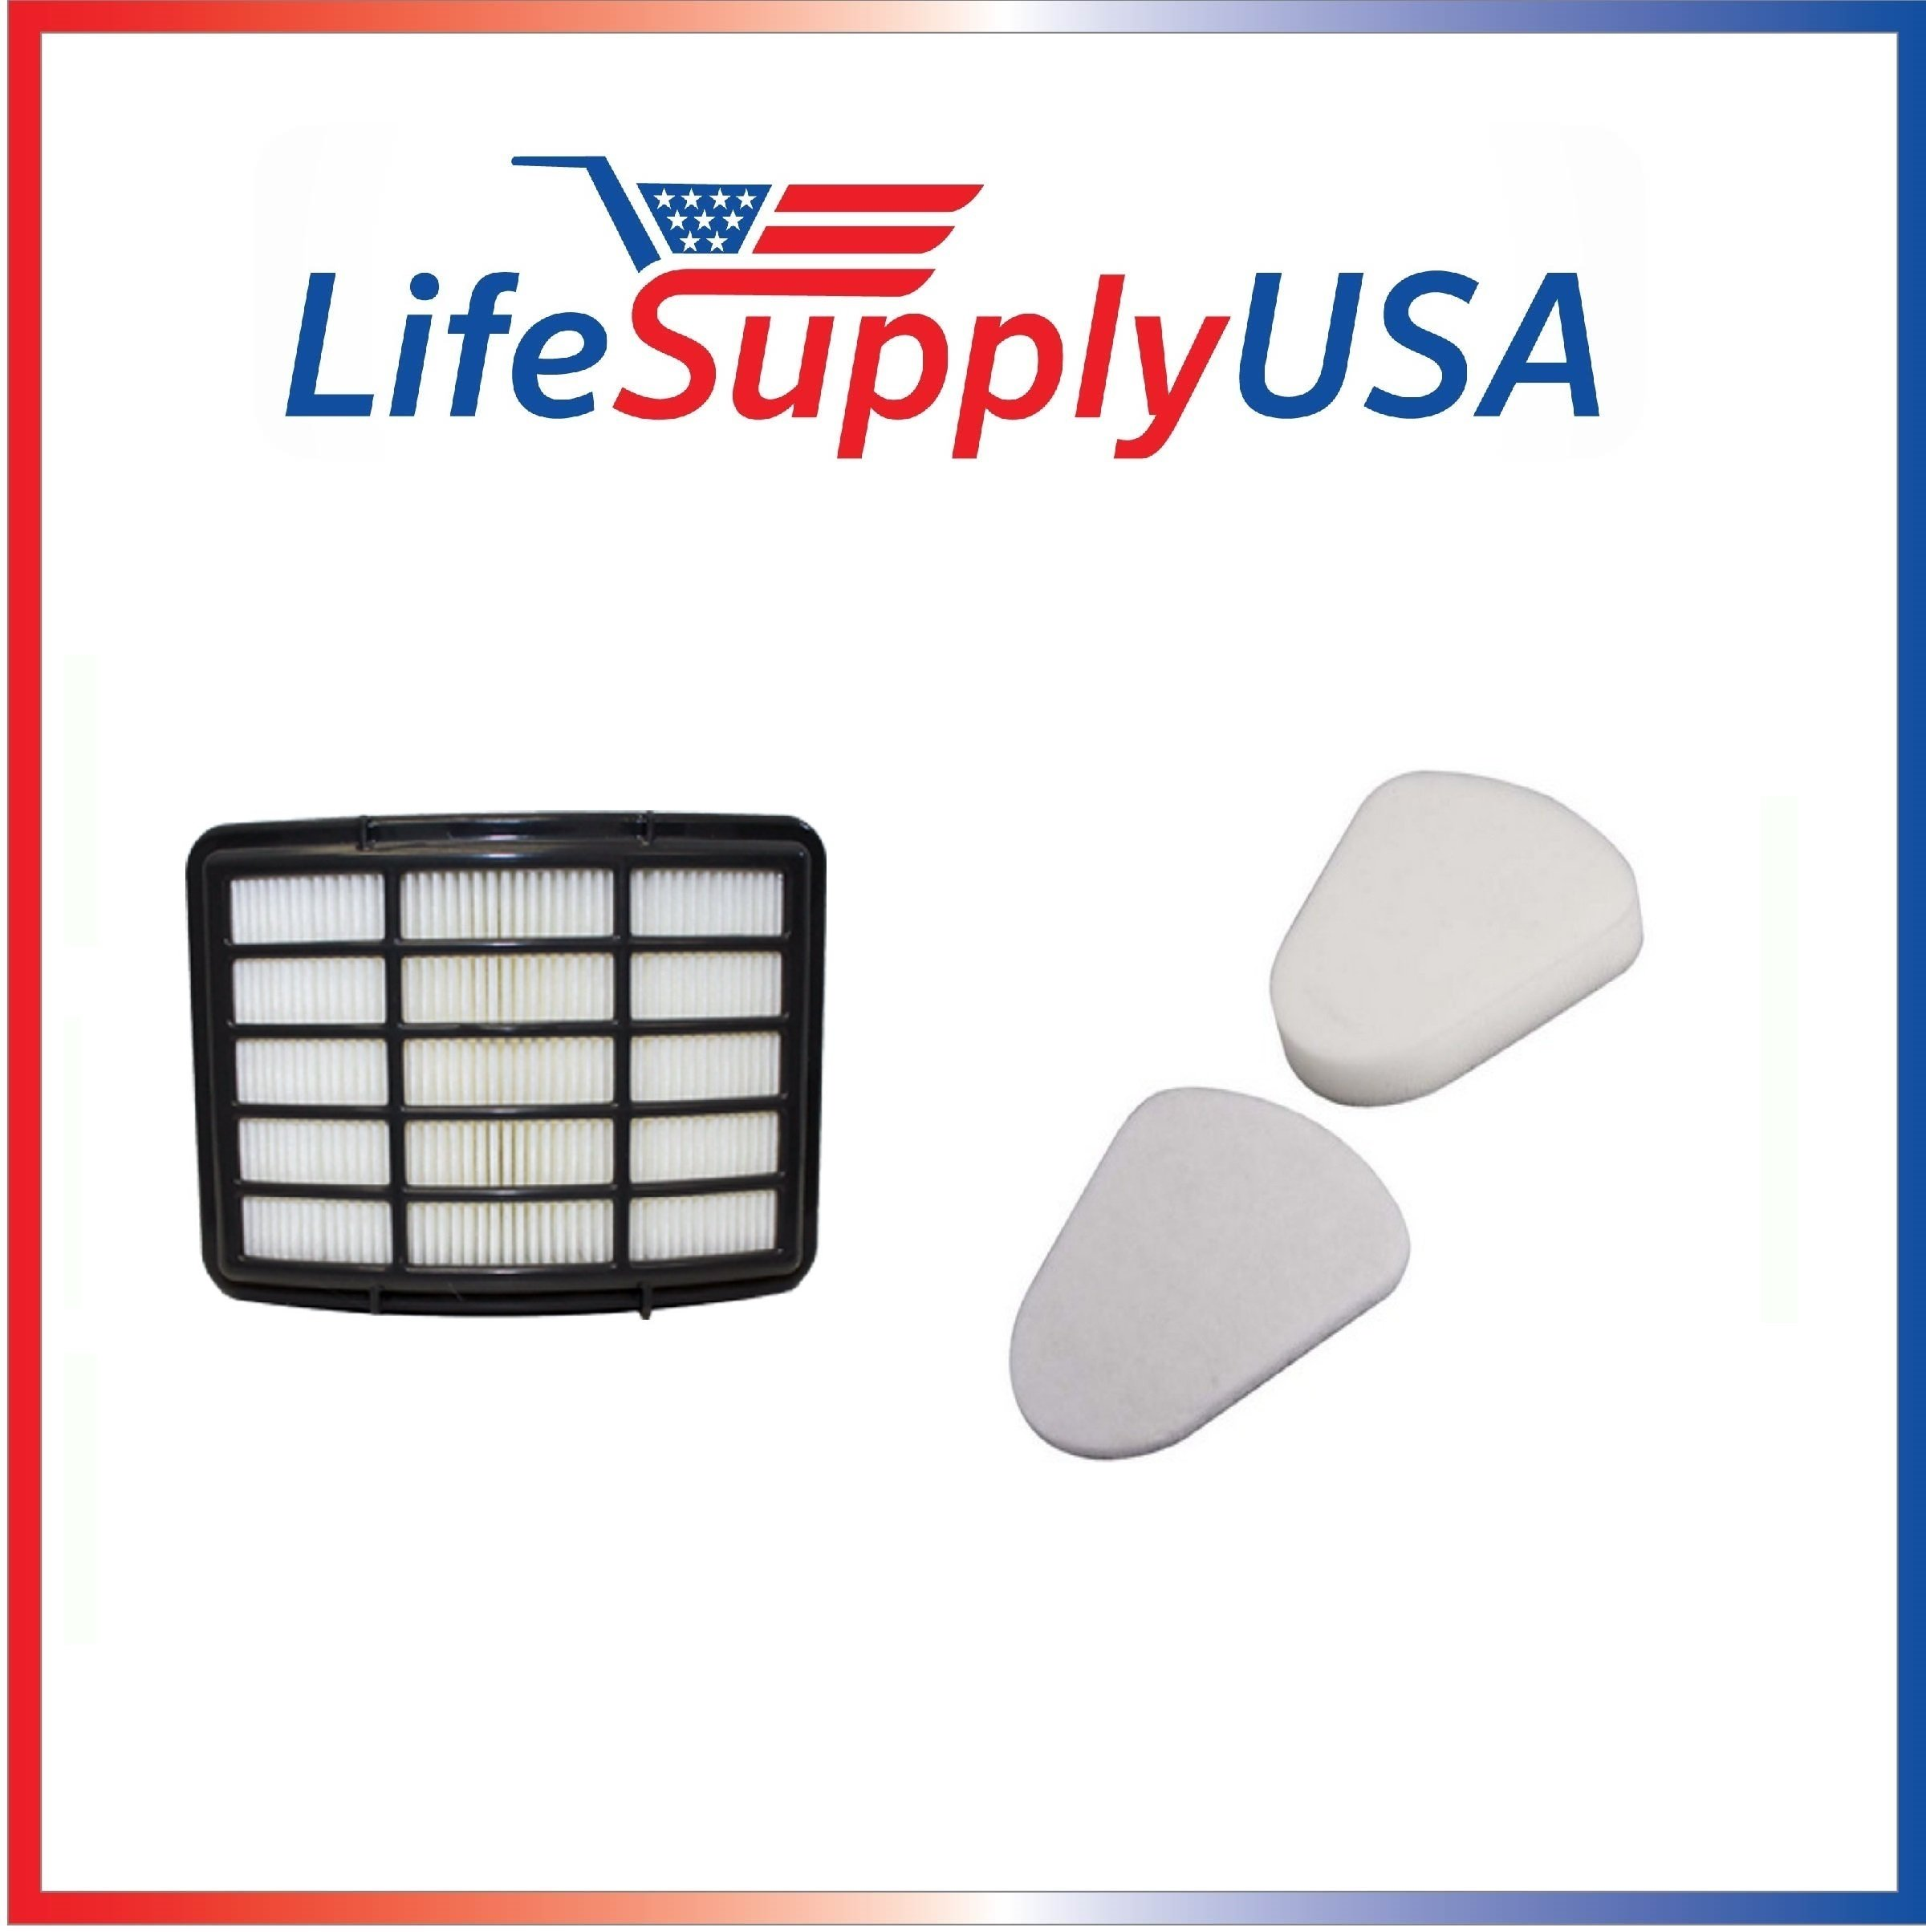 50 Pk Filter Kit for Shark Navigator Lift-away Nv350 Nv351, Nv352, Nv355, Nv356, Nv357, Xff350, Xhf350 50 Hepa Filter and 50 Foam and 50 Felt Pre-Filters by LifeSupplyUSA